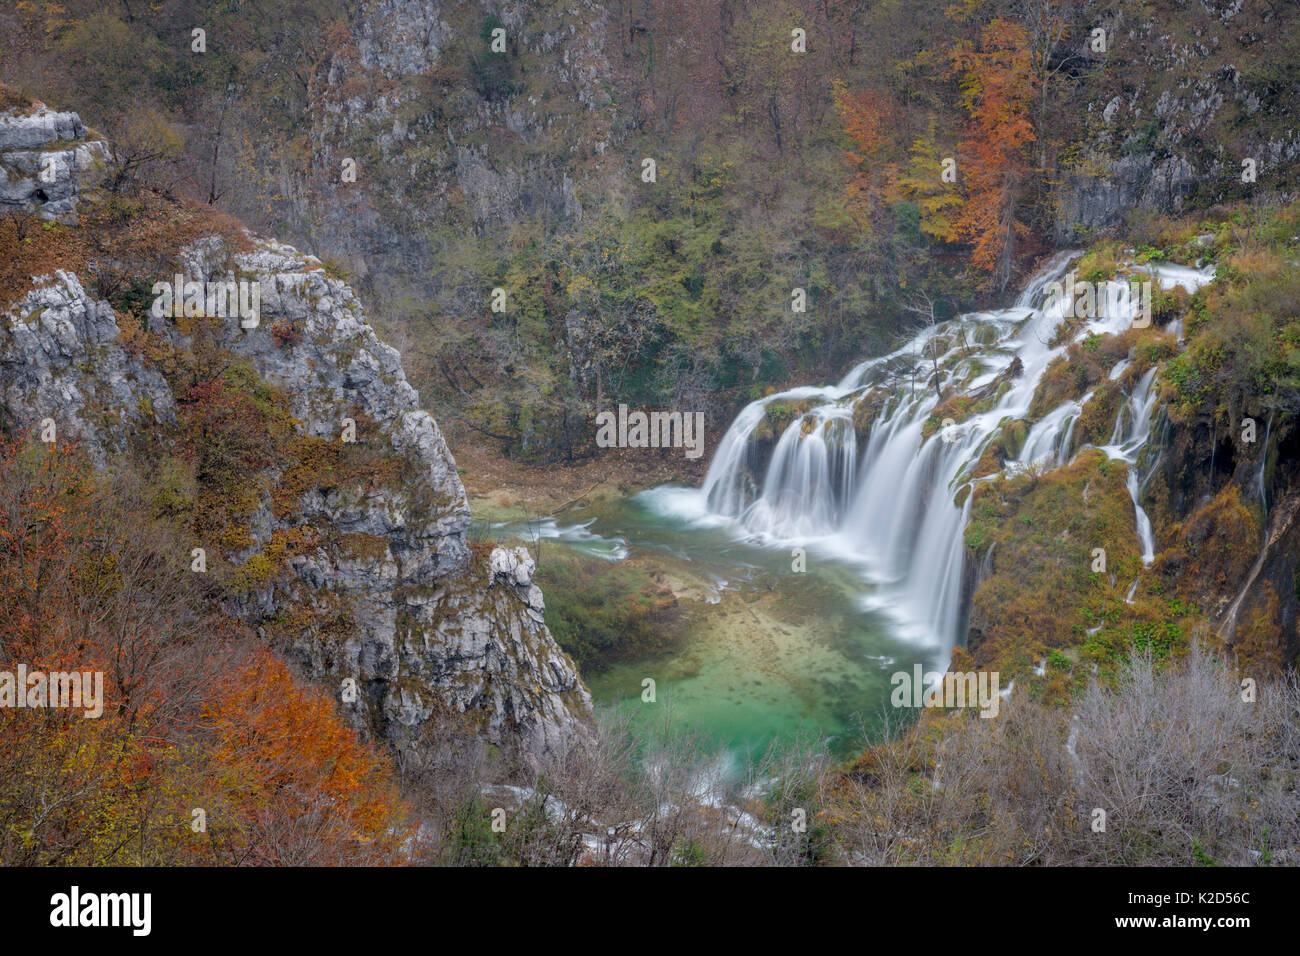 Series of waterfalls known as 'Sastavci' that cascade between mountain lakes, Plitvice Lakes National Park, Croatia. November. - Stock Image